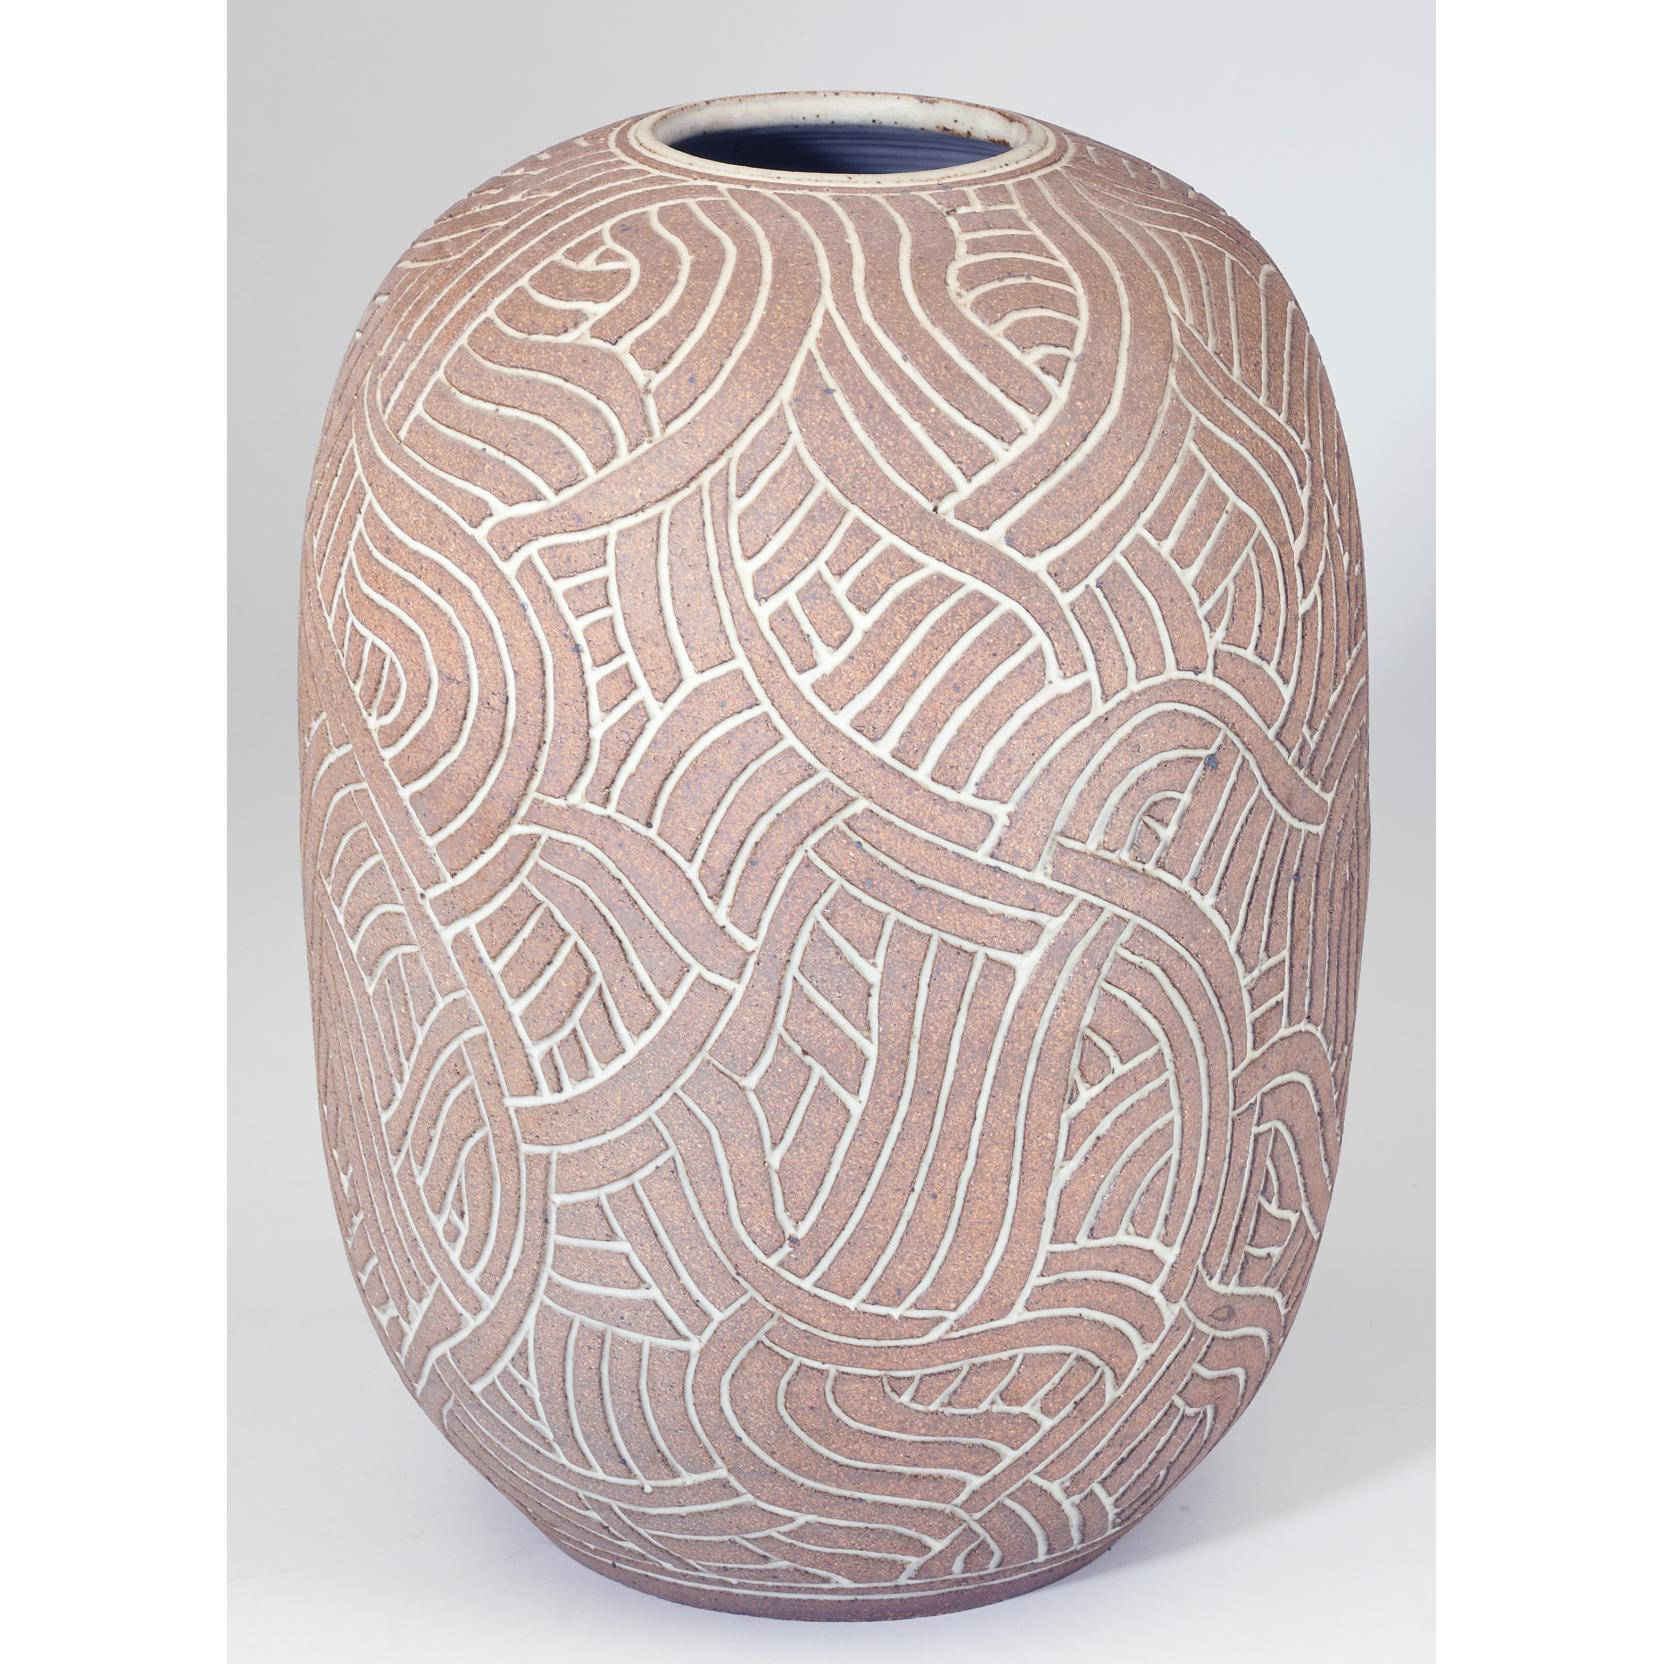 joe-lindgren-incised-ceramic-vessel